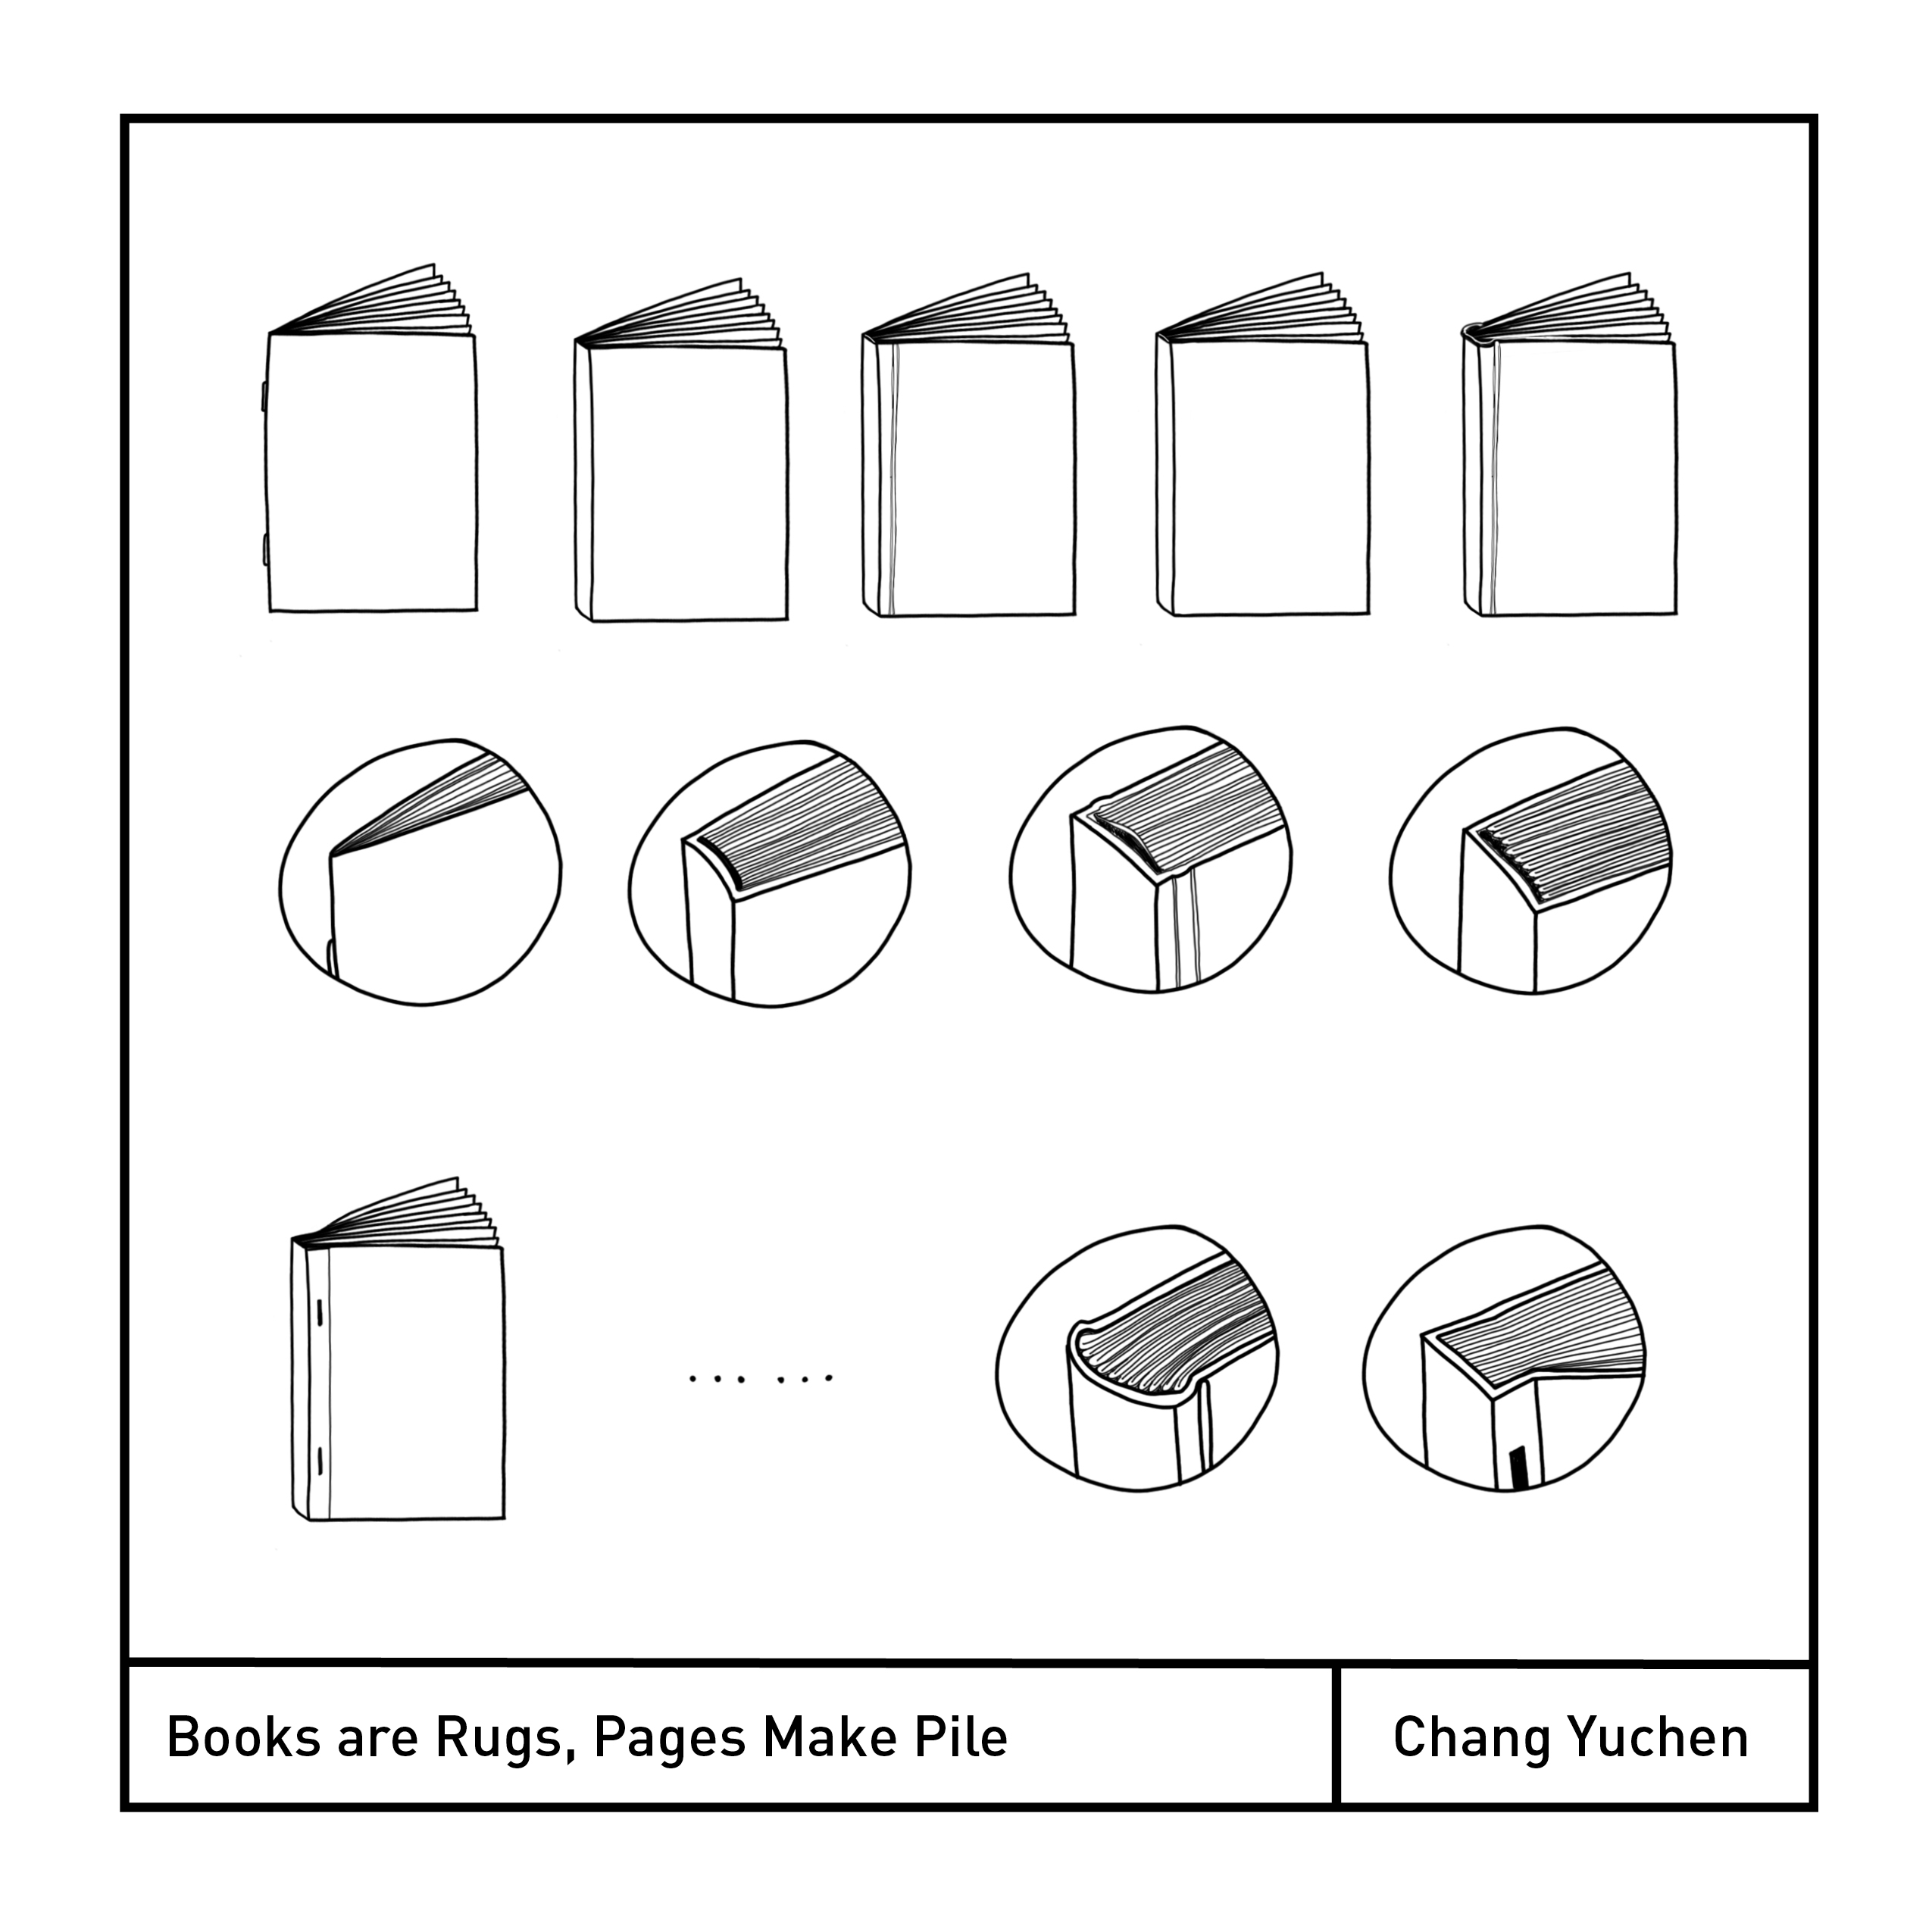 Digitally drawn square image of open books and close ups of their spines.